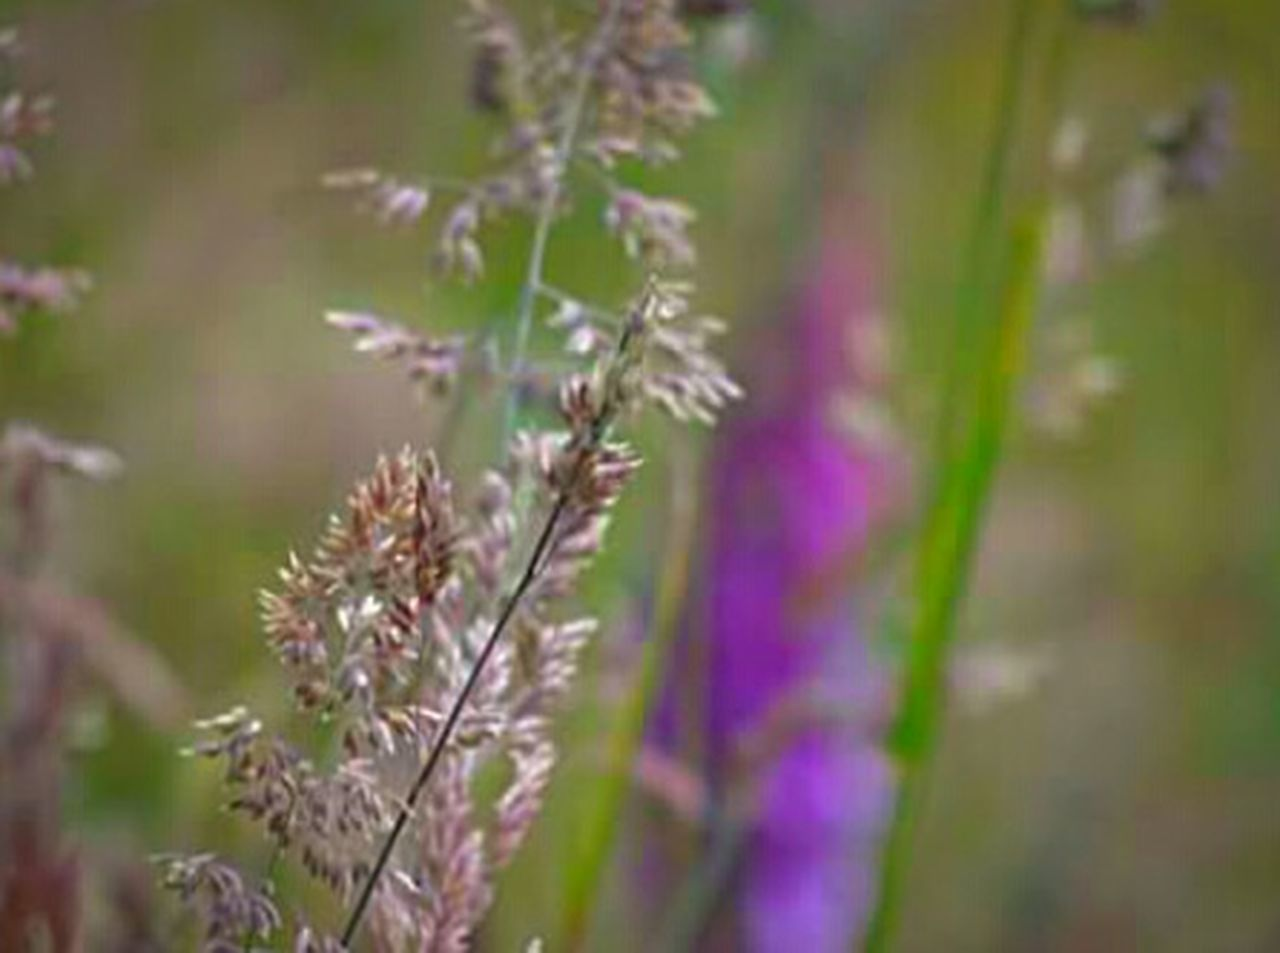 flower, nature, growth, plant, purple, fragility, outdoors, freshness, day, no people, focus on foreground, field, beauty in nature, close-up, springtime, grass, flower head